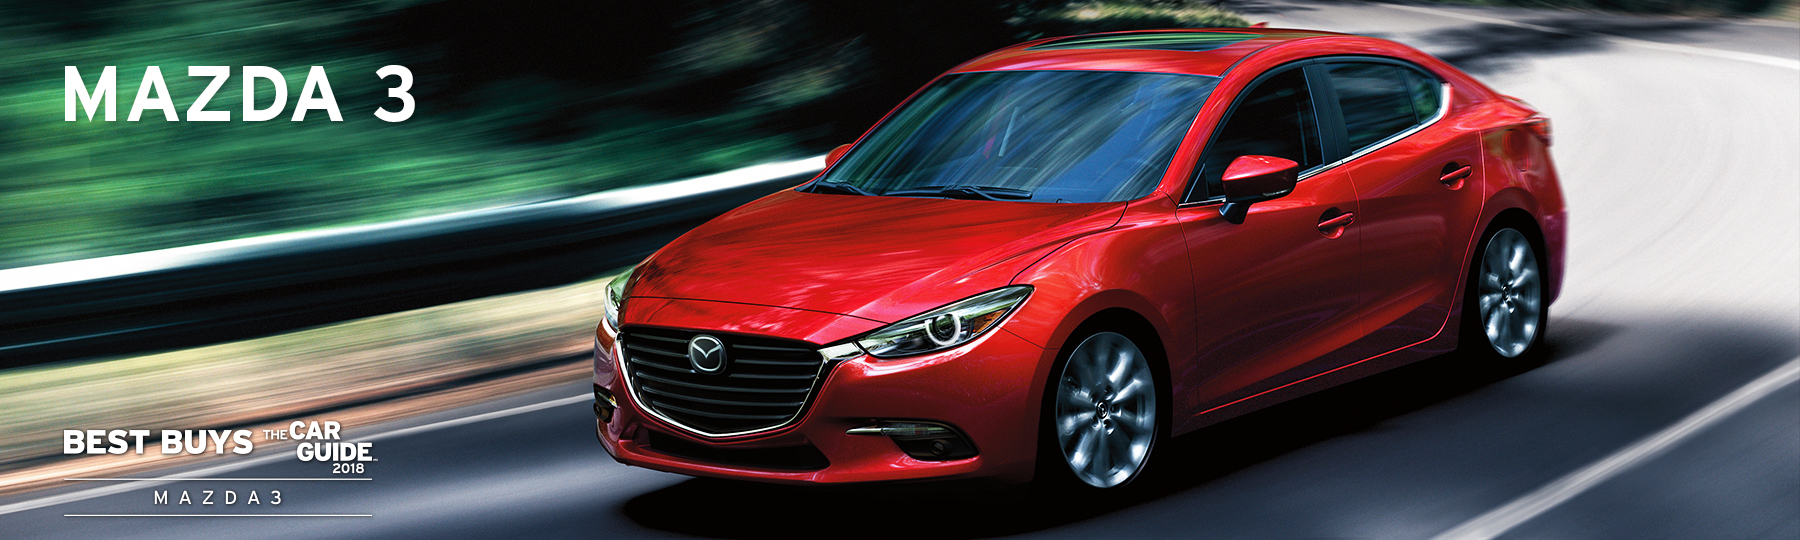 Mazda 3 Owners Manual: Saving Fuel and Protection of theEnvironment